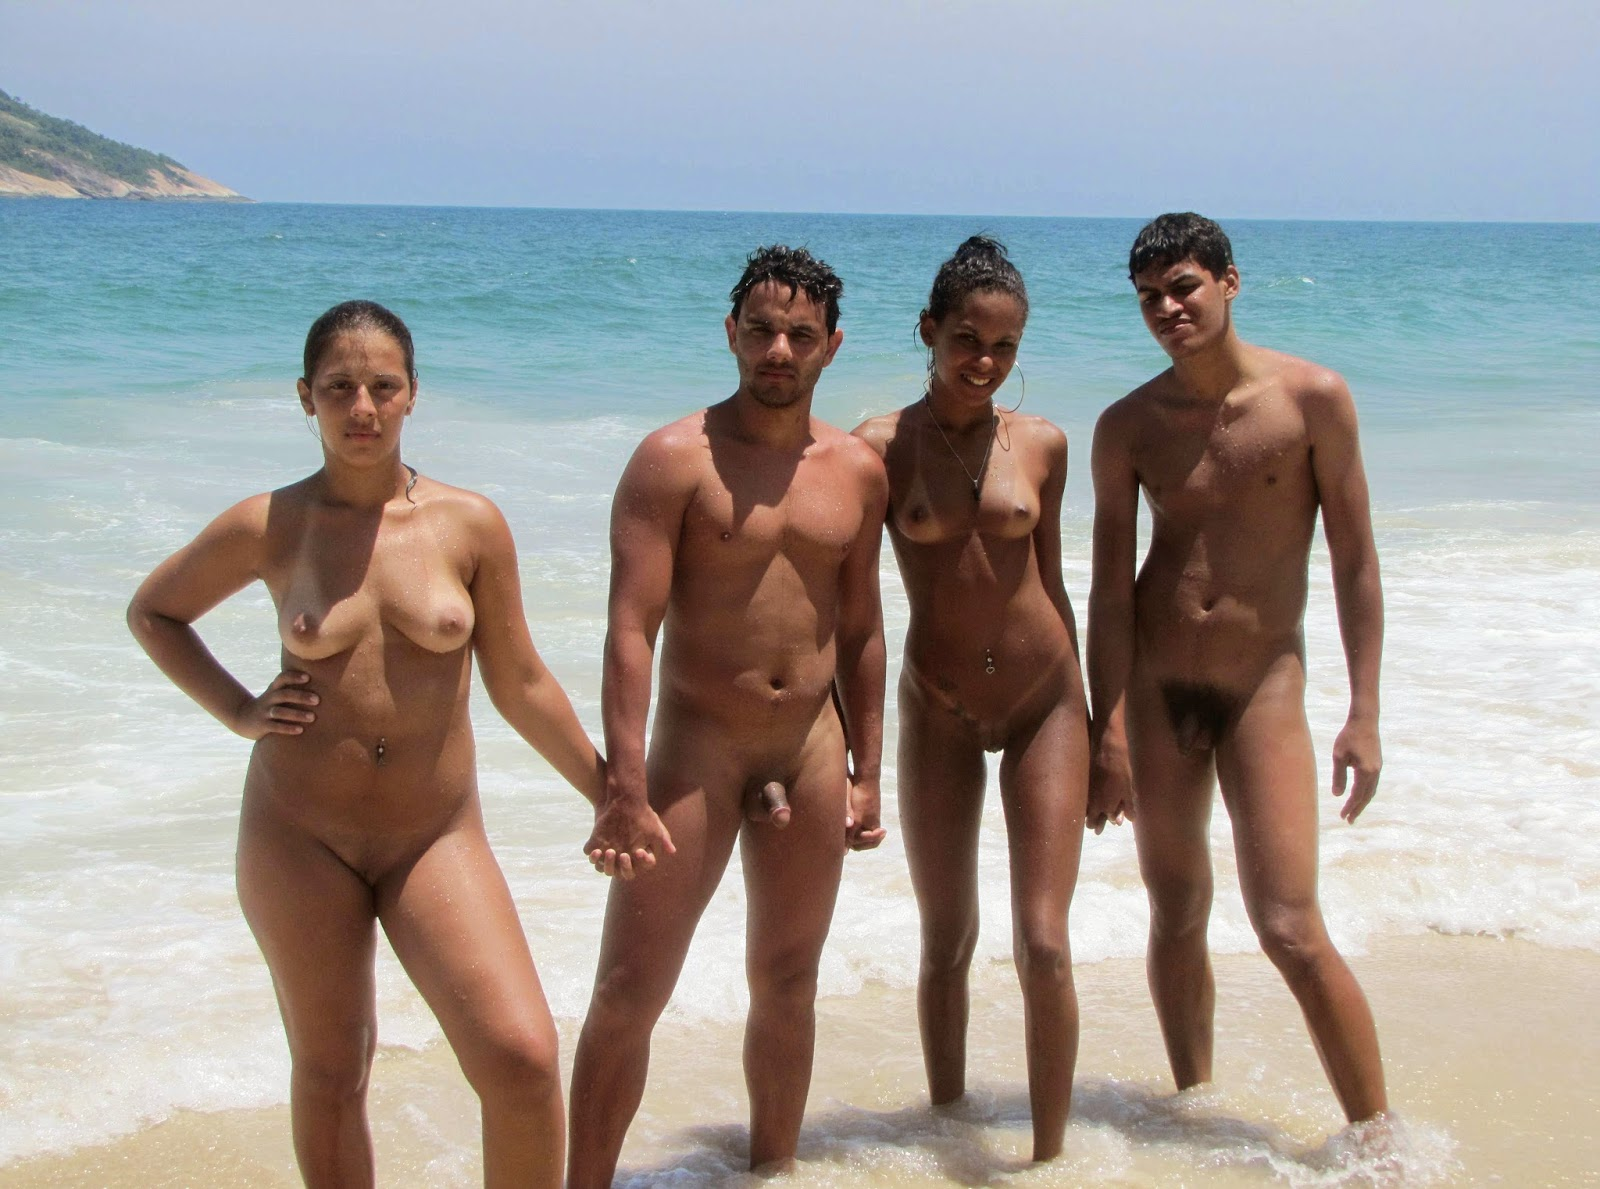 Brazilian nudist pics thanks